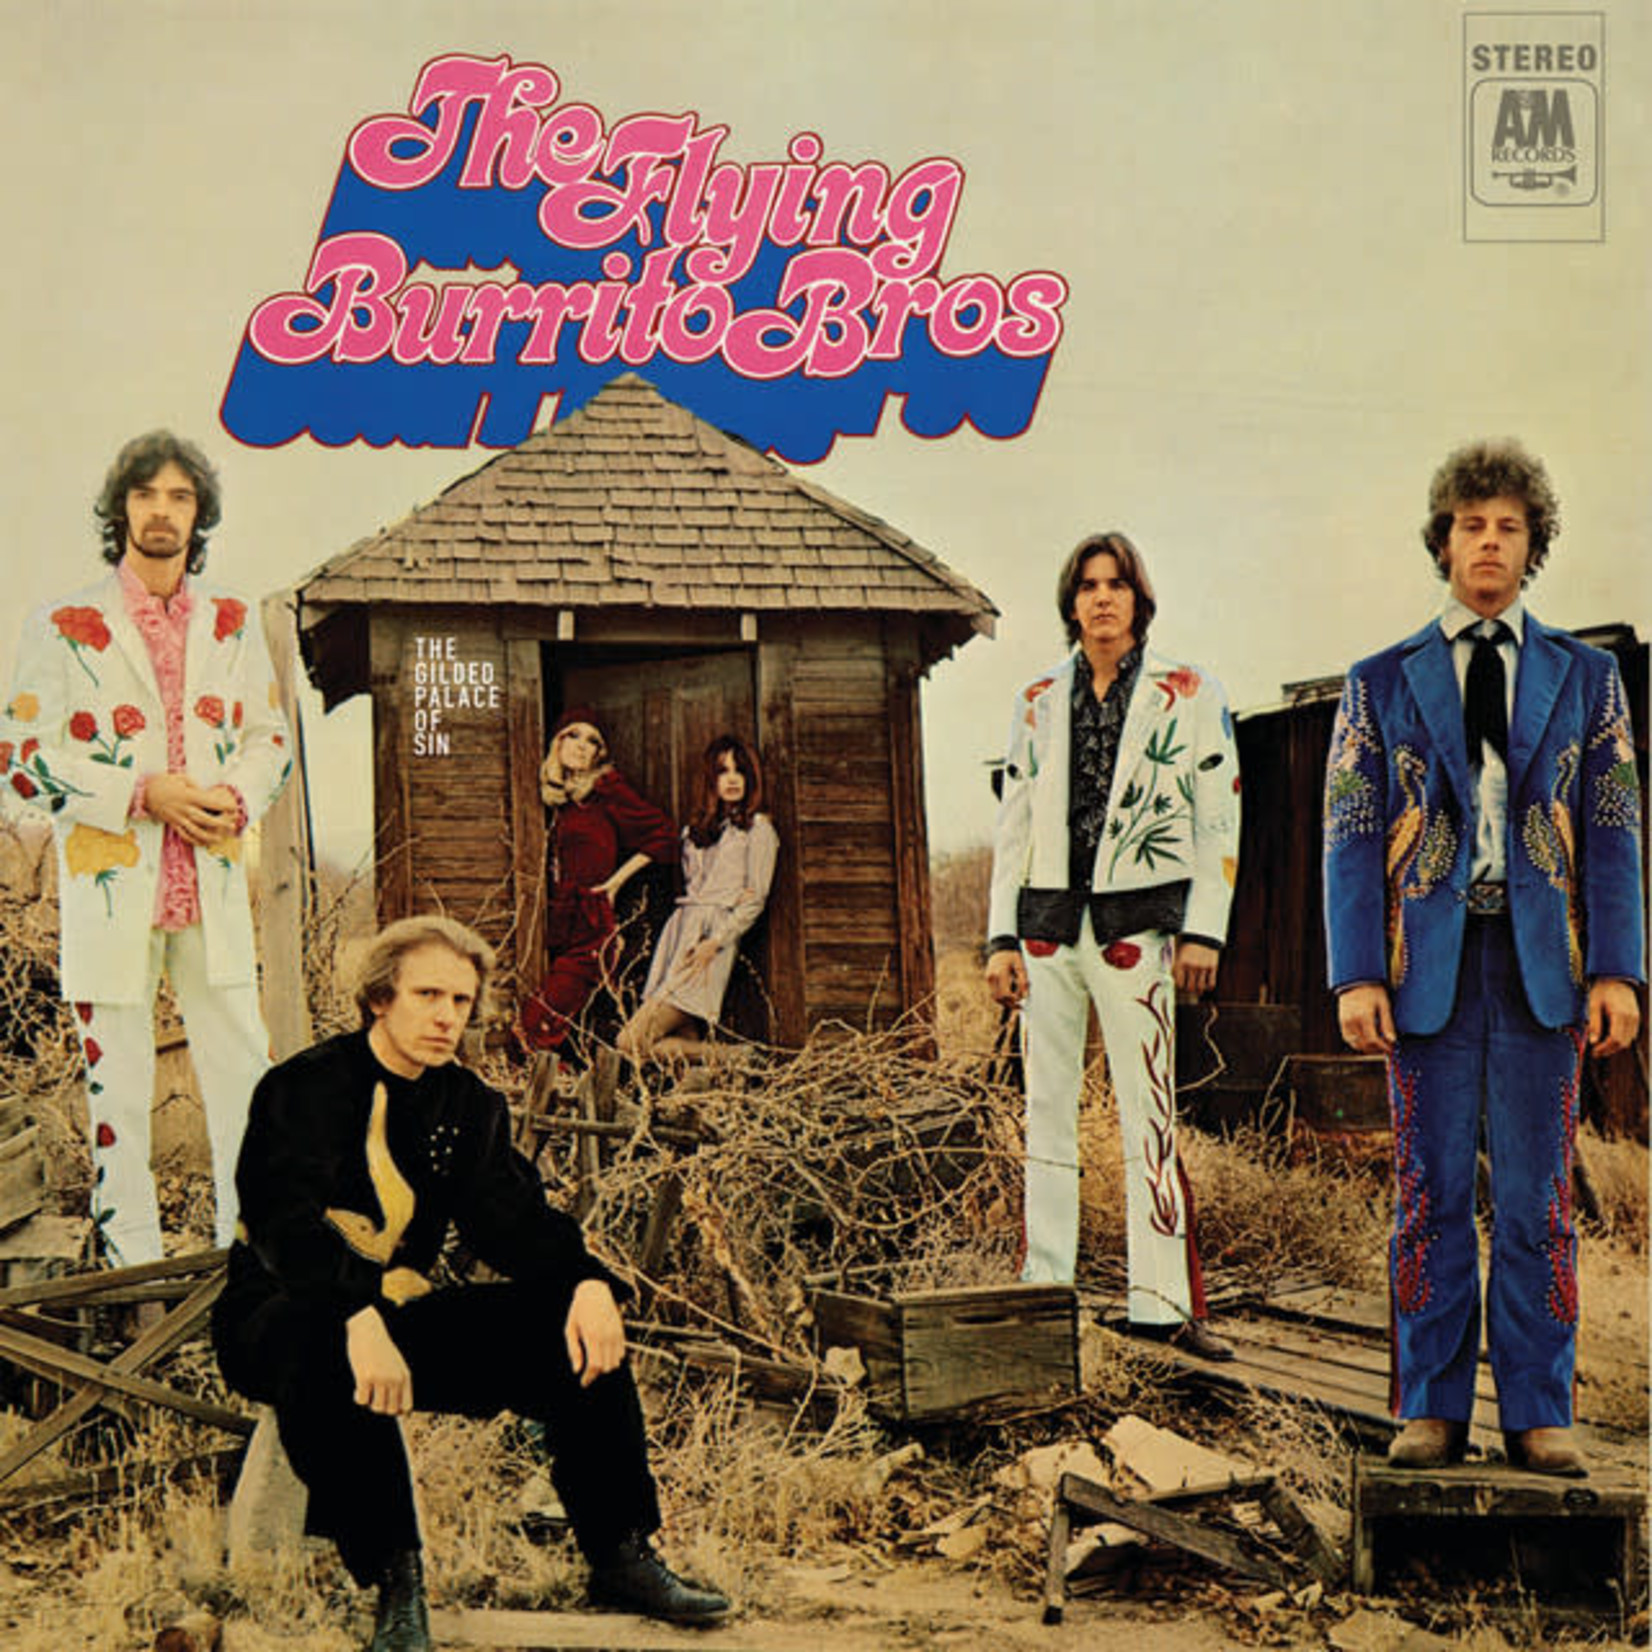 Compact Disc The Flying Burrito Brothers - The Gilded Palace Of Sin  SACD